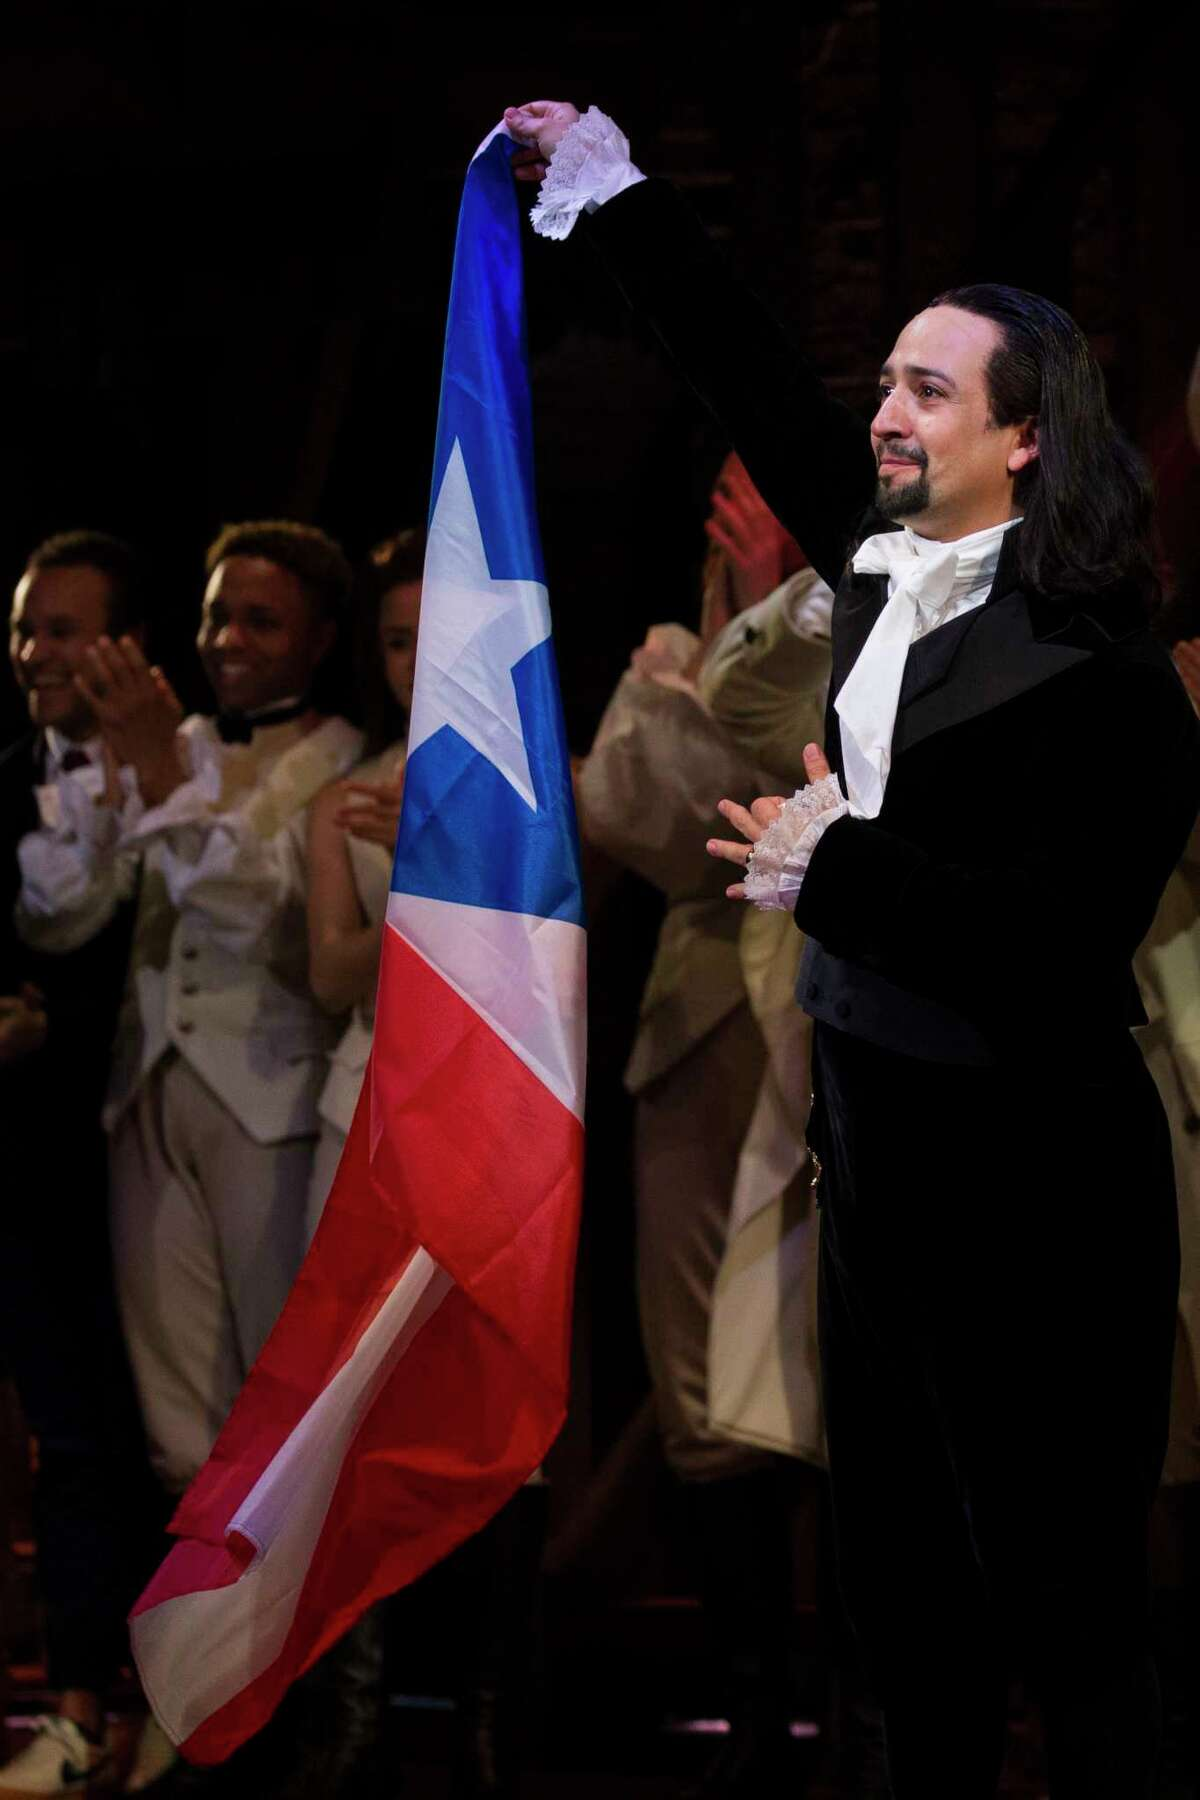 Lin-Manuel Miranda thanks the audience after his performance in